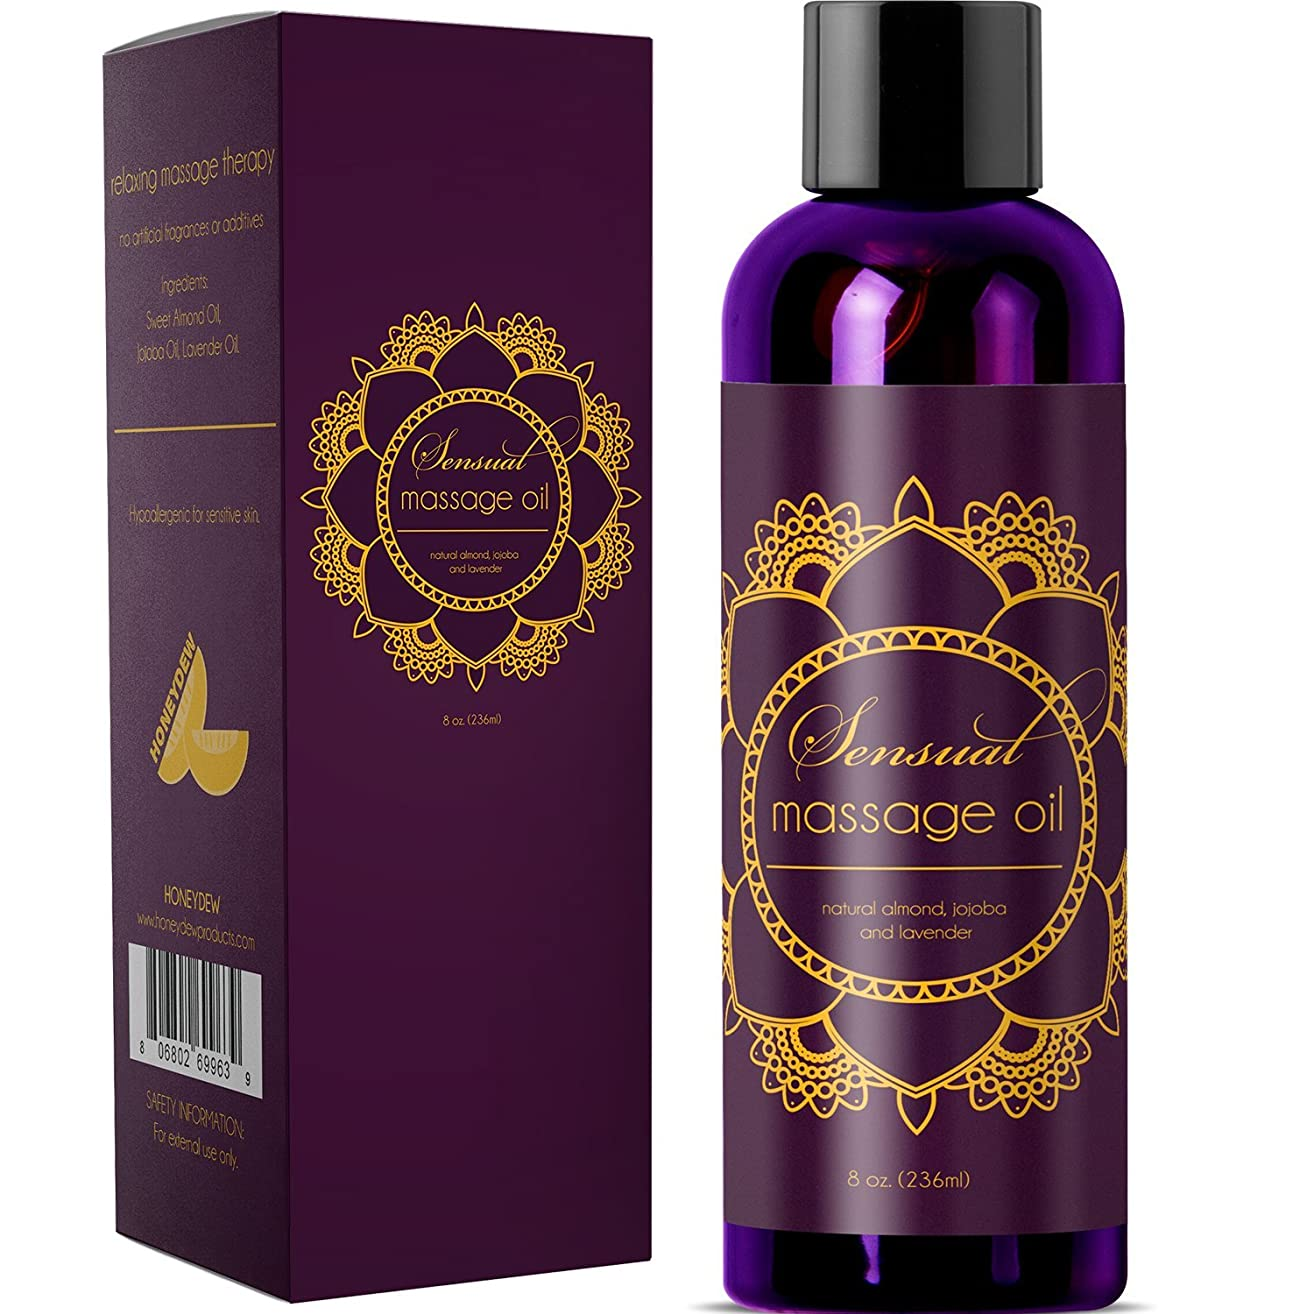 Sensual Massage Oil with Relaxing Lavender, Almond Oil and Jojoba for Men and Women – 100% Natural Hypoallergenic Skin Therapy with No Artificial or Added Ingredients - USA Made by Honeydew